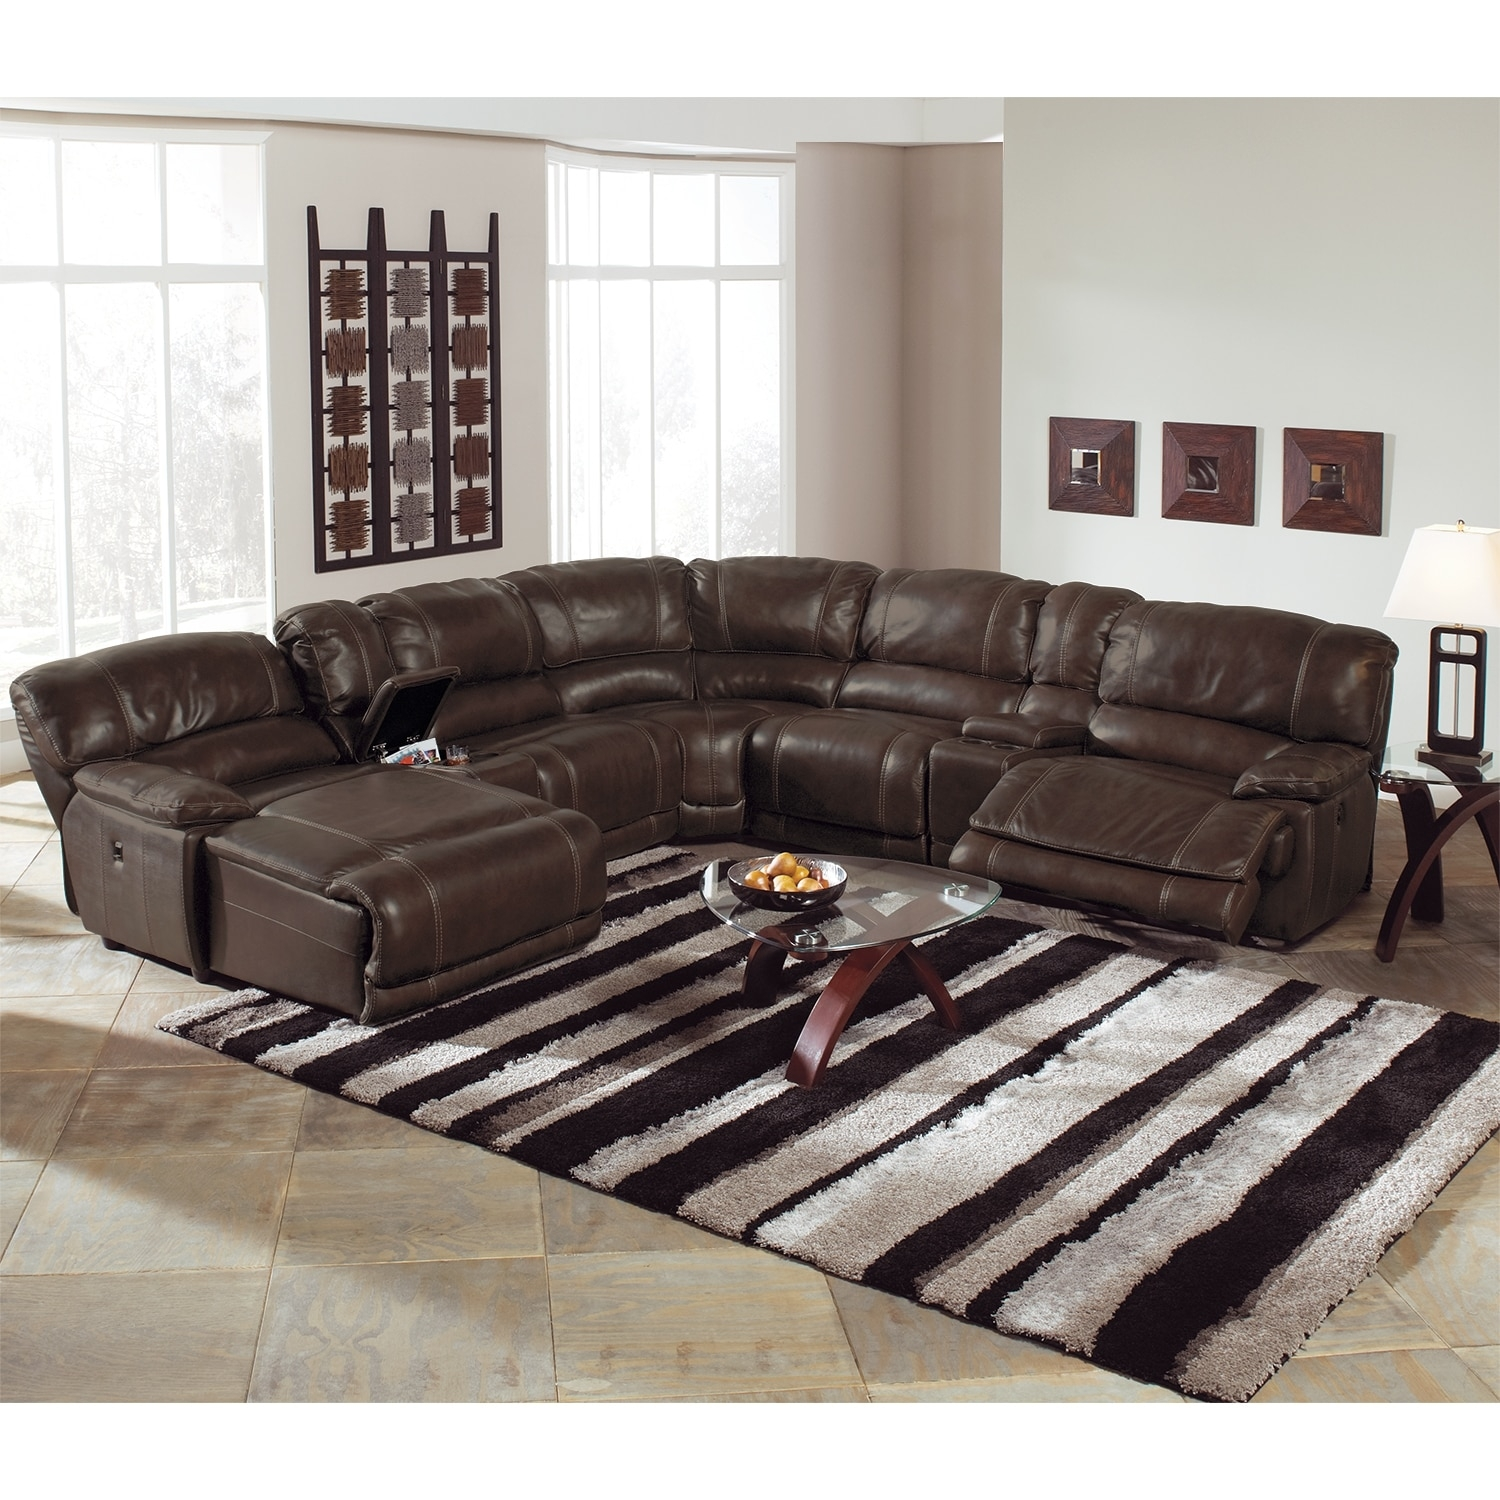 Simple 6 Piece Leather Sectional Sofa 76 On 10 Piece Sectional With Regard To 10 Piece Sectional Sofa (#12 of 12)